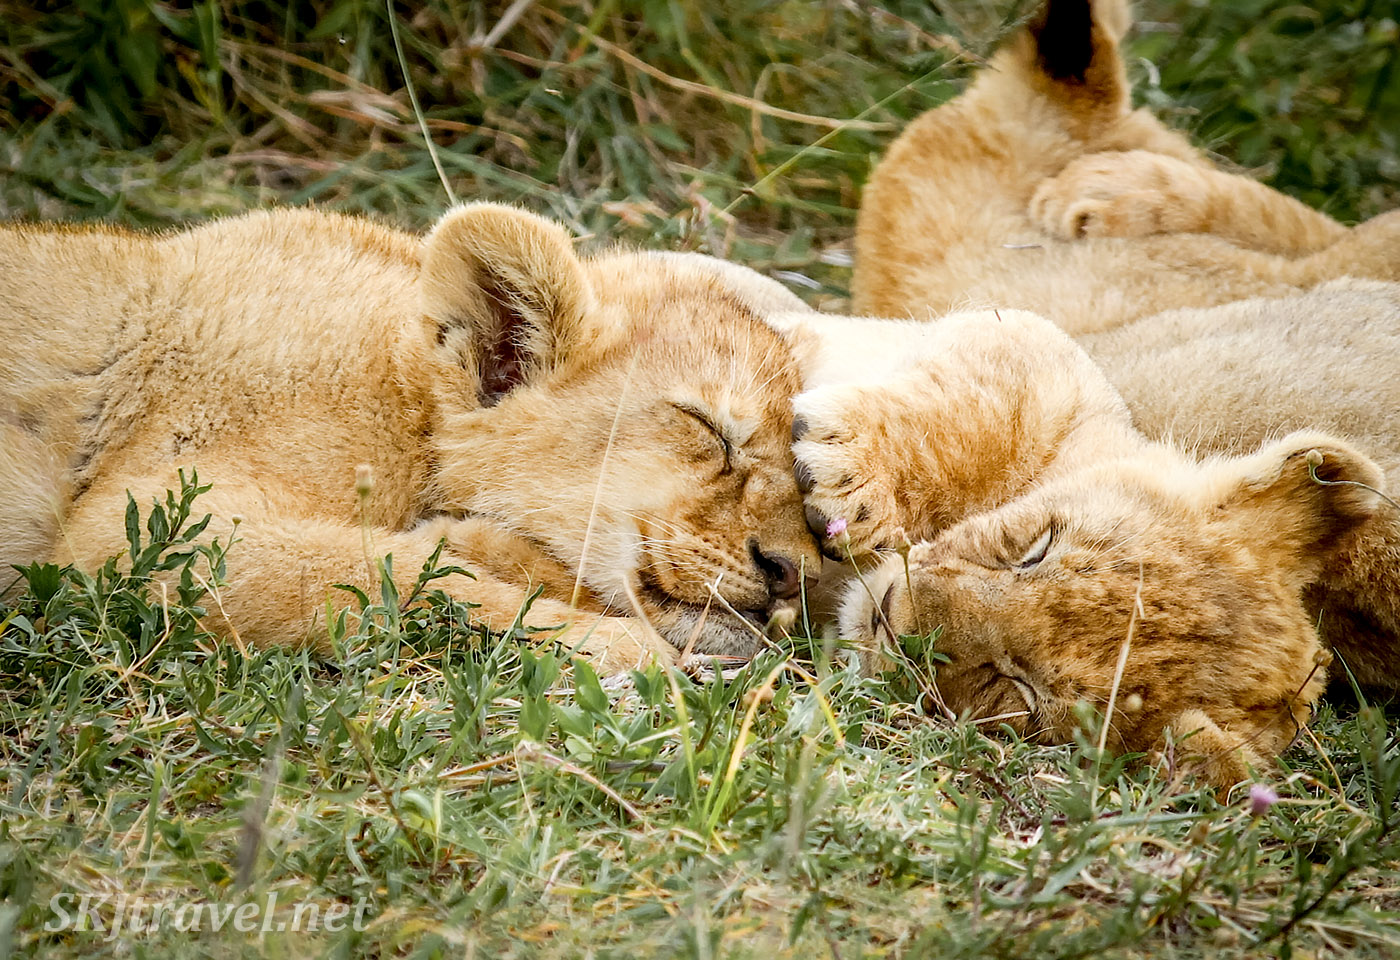 Lions cubs sleeping in the grass, one paw on the other's forehead. Ndutu, Tanzania.